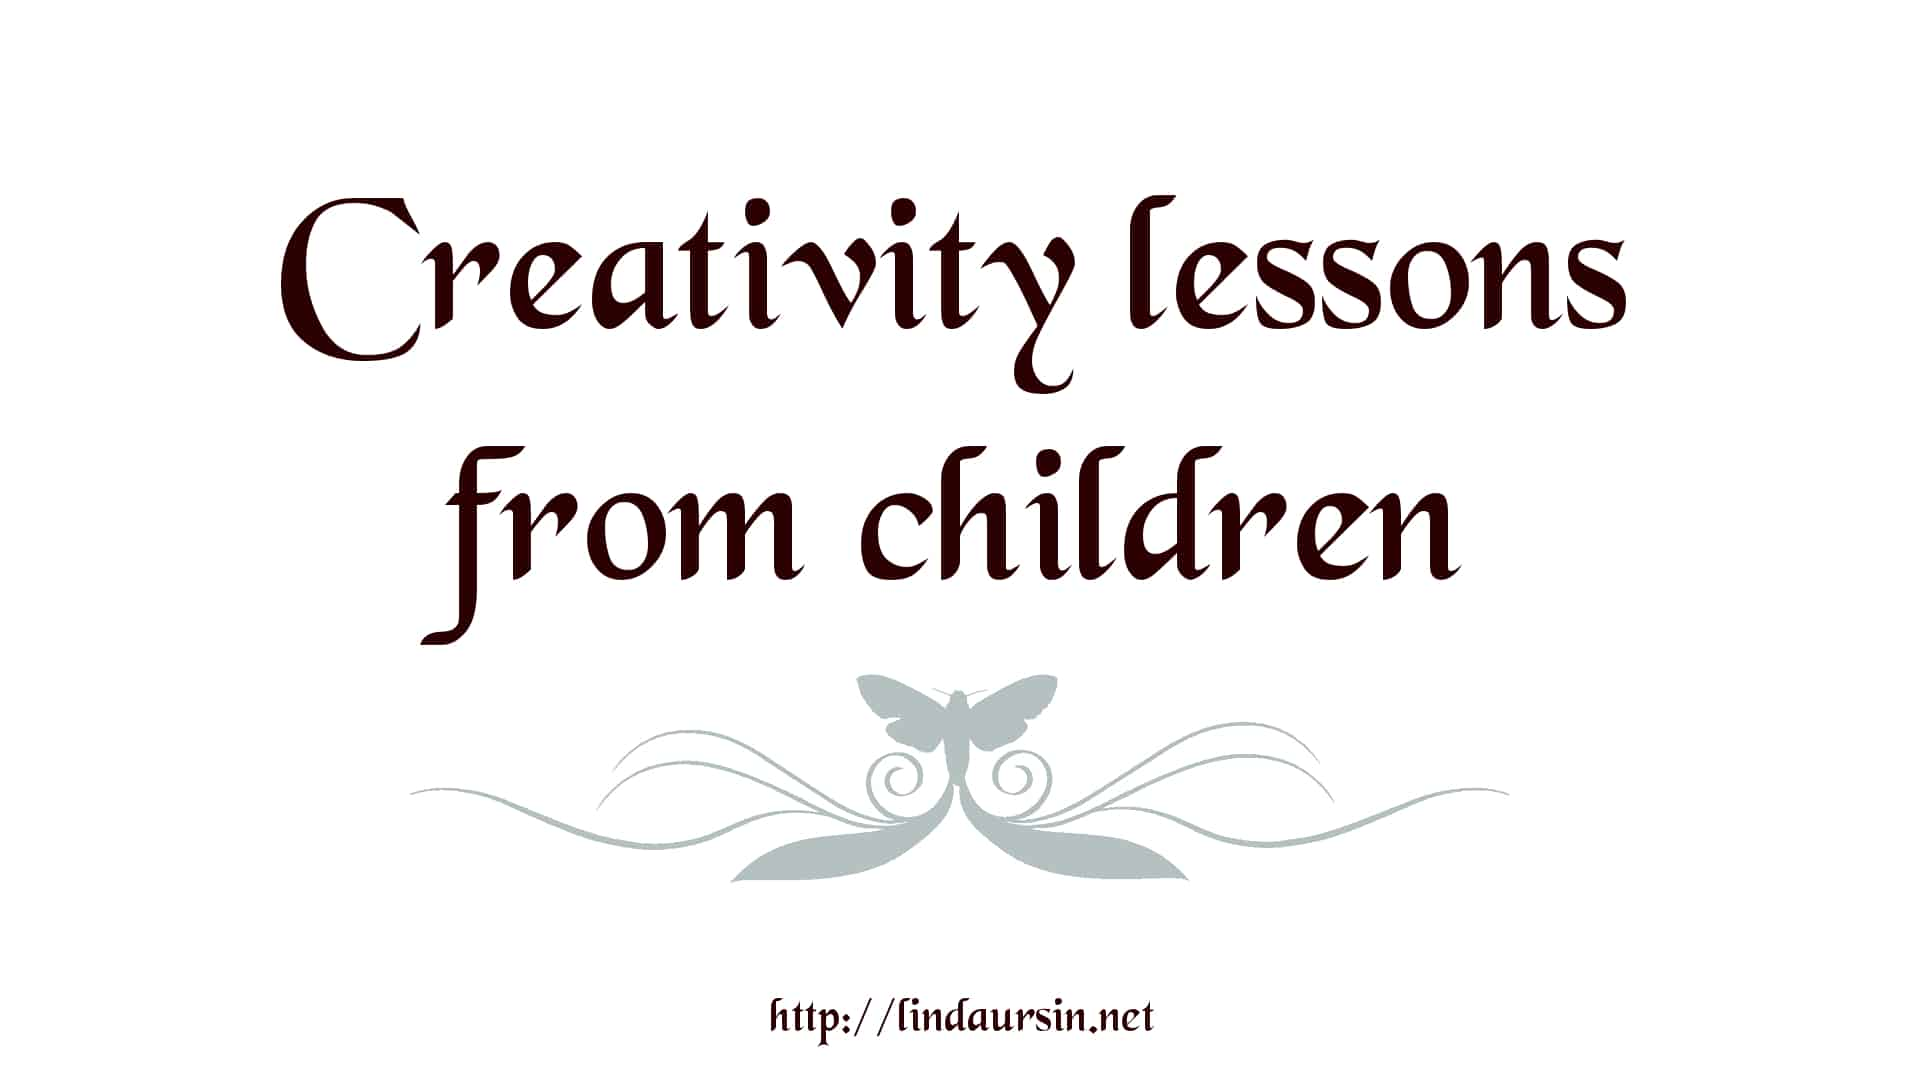 5 creativity lessons from children to you